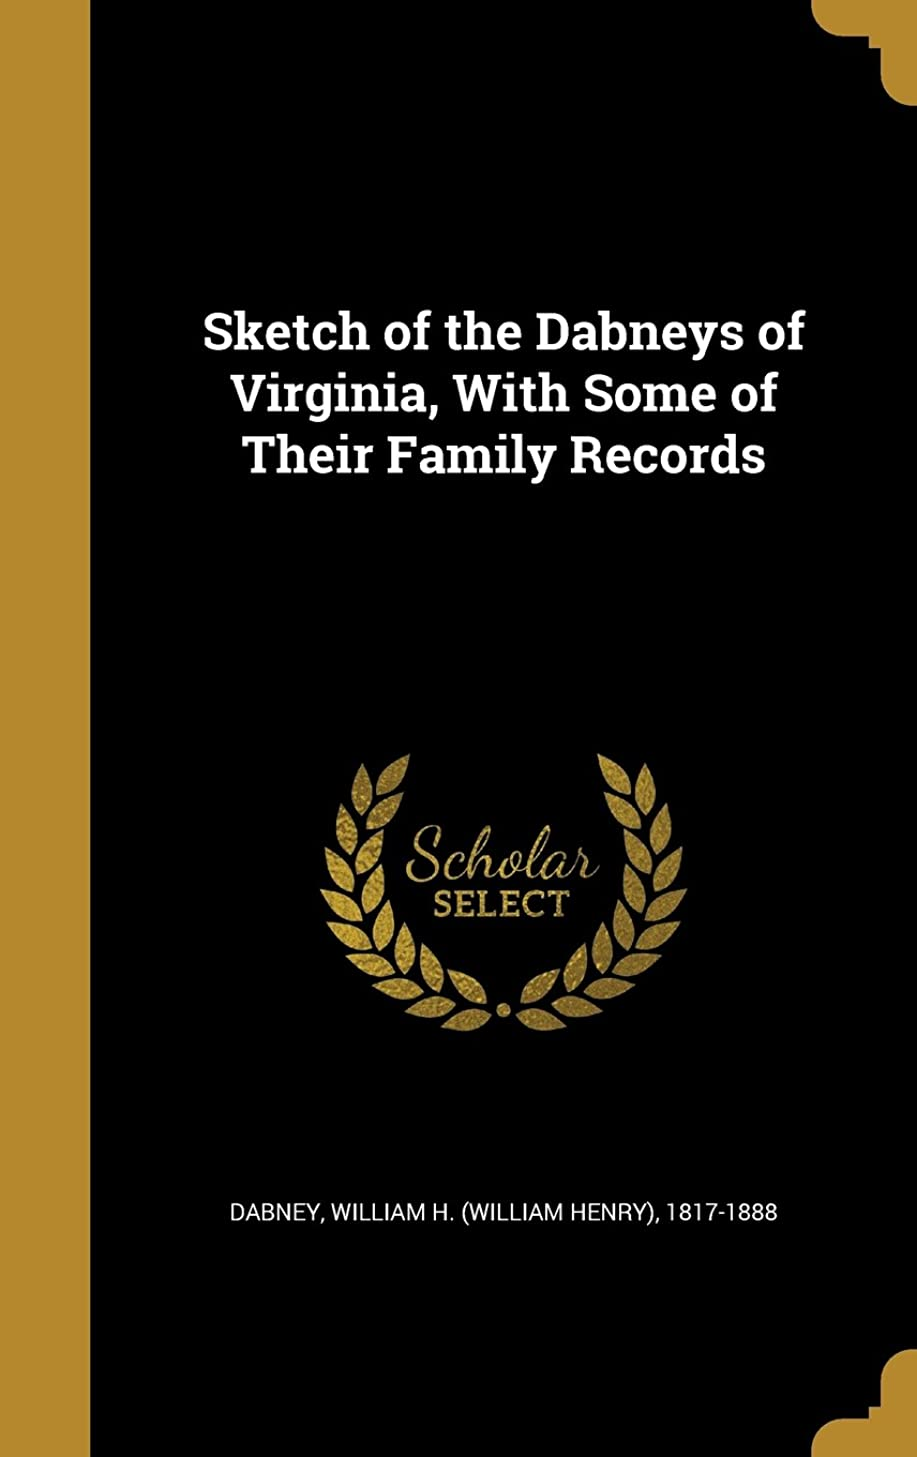 Sketch of the Dabneys of Virginia, with Some of Their Family Records